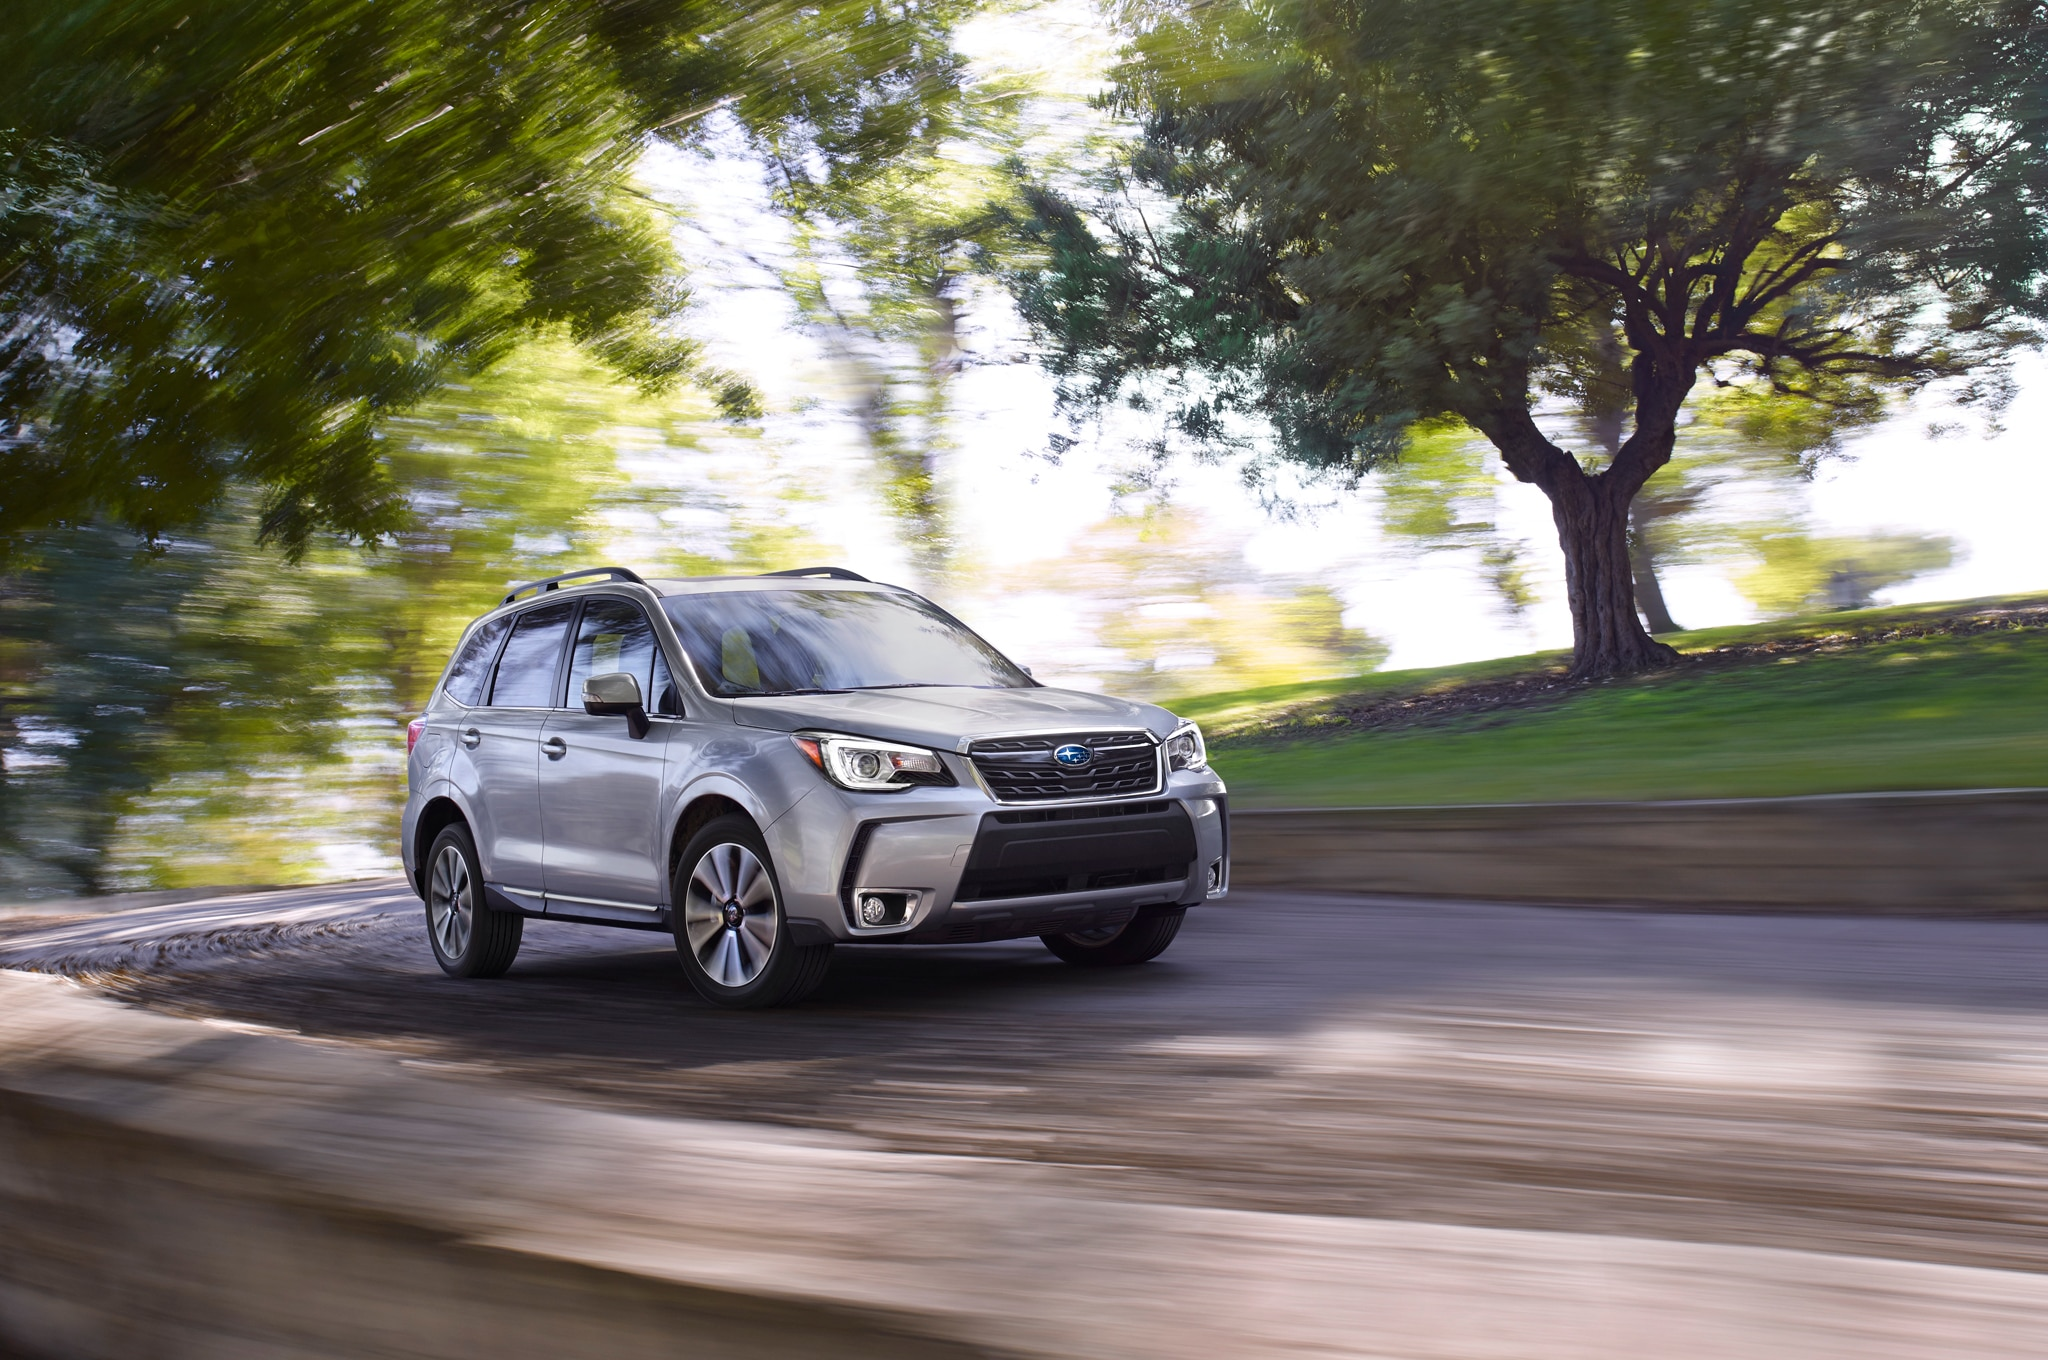 2017 Subaru Forester Front Three Quarter In Motion 1